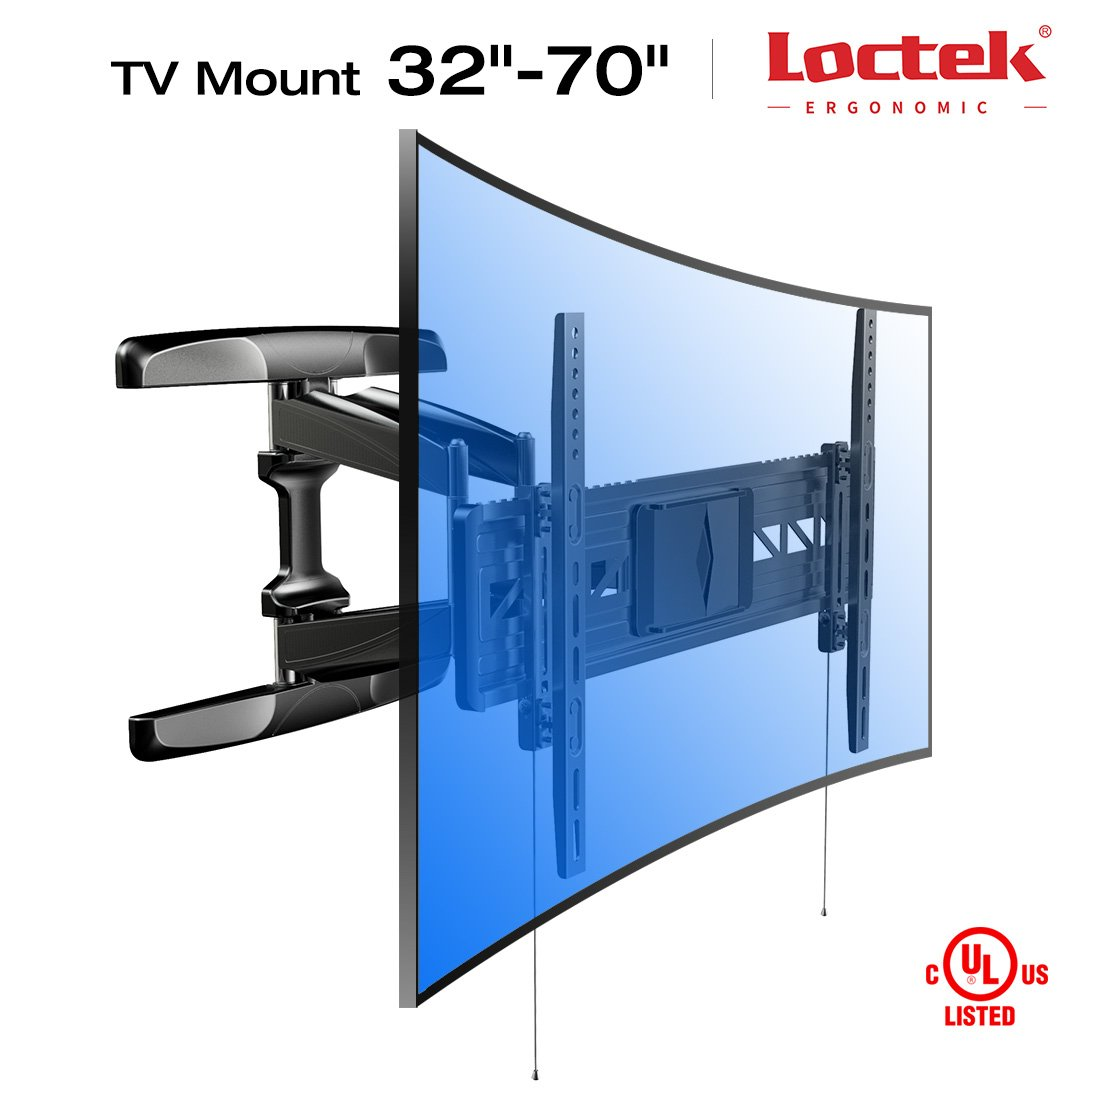 Loctek 18.8'' Long Extension Curved TV Wall Mount Bracket for 32-70 inch Both Curved and Flat Panel TVs with VESA Patterns up to 600 x 400mm/Articulating Arm Swivel Tilt Max. Fits 16 inch Wall Stud